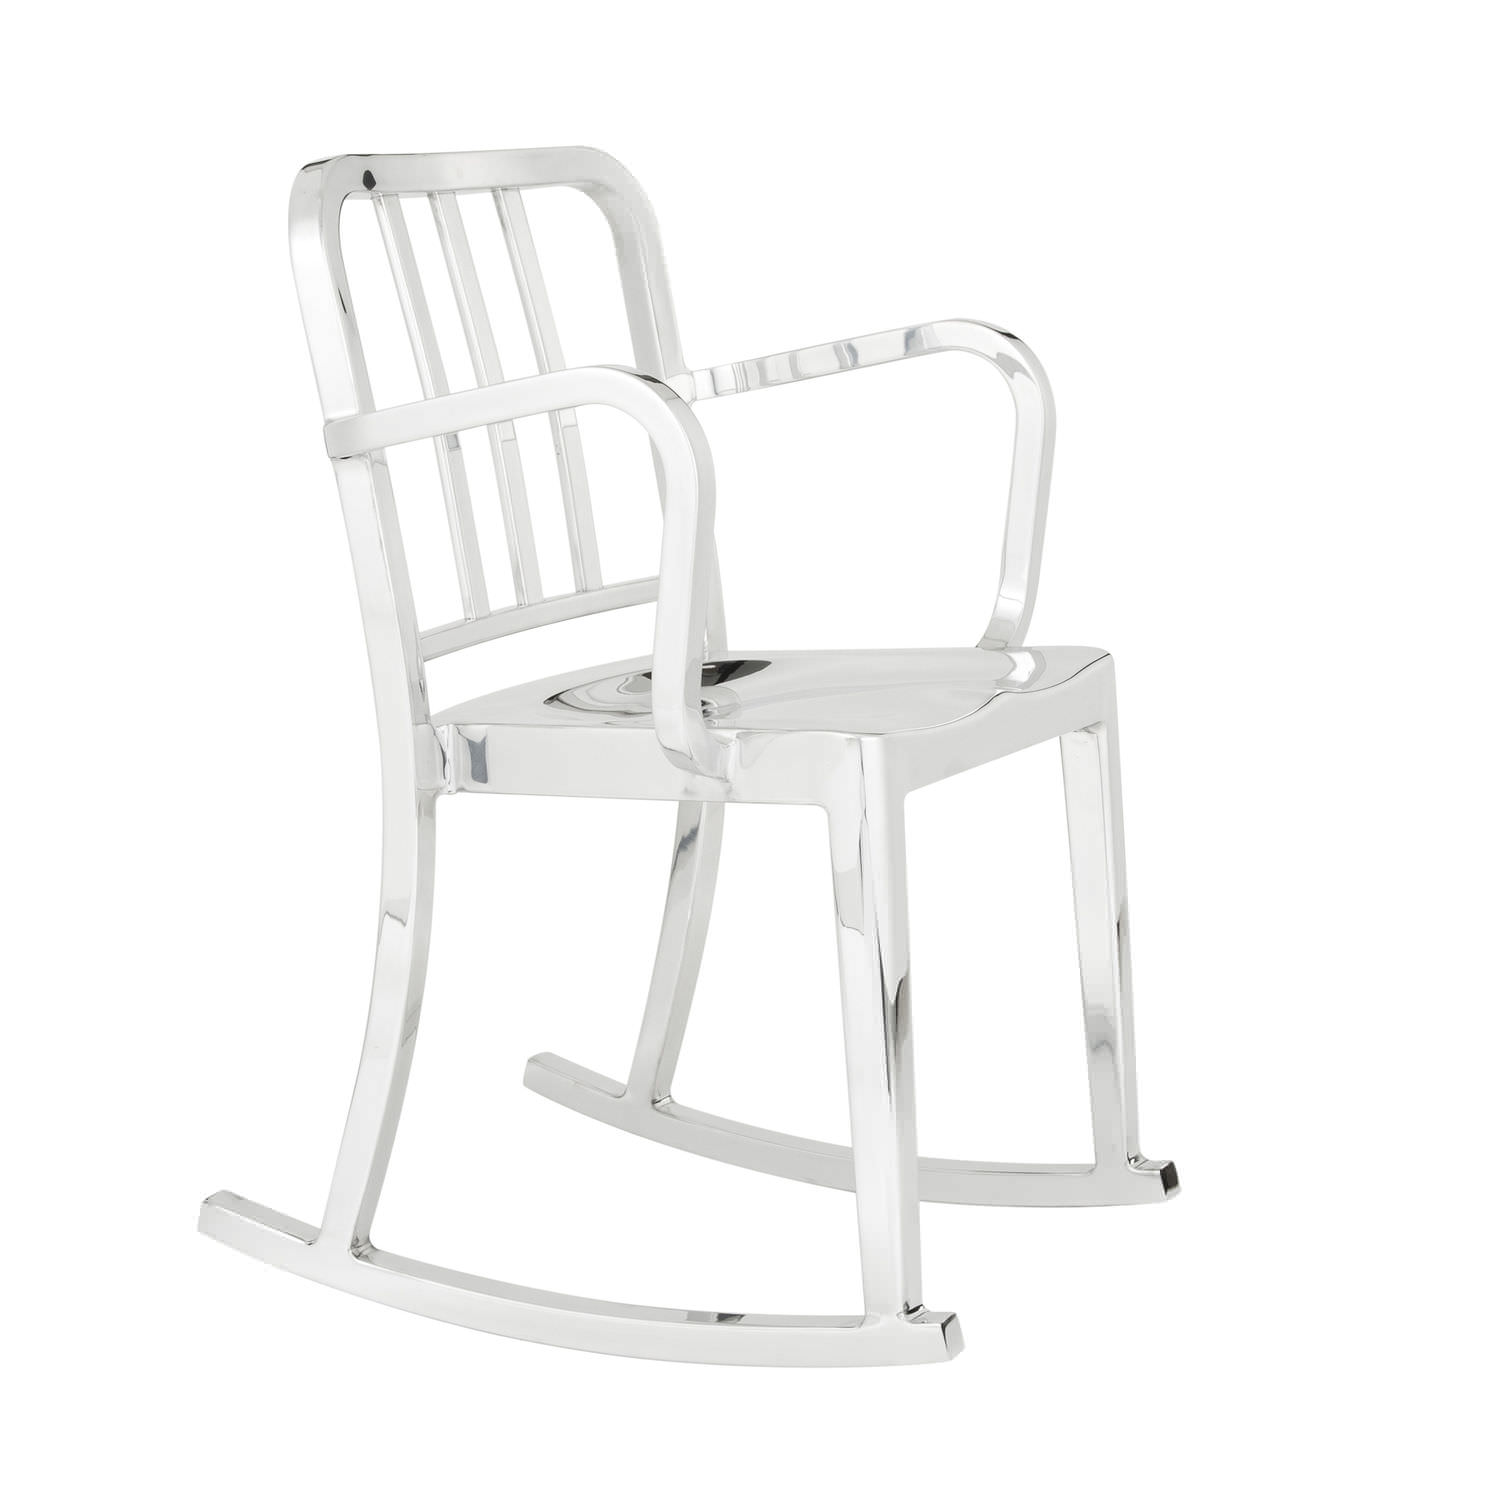 Contemporary chair rocker wooden aluminium HERITAGE emeco